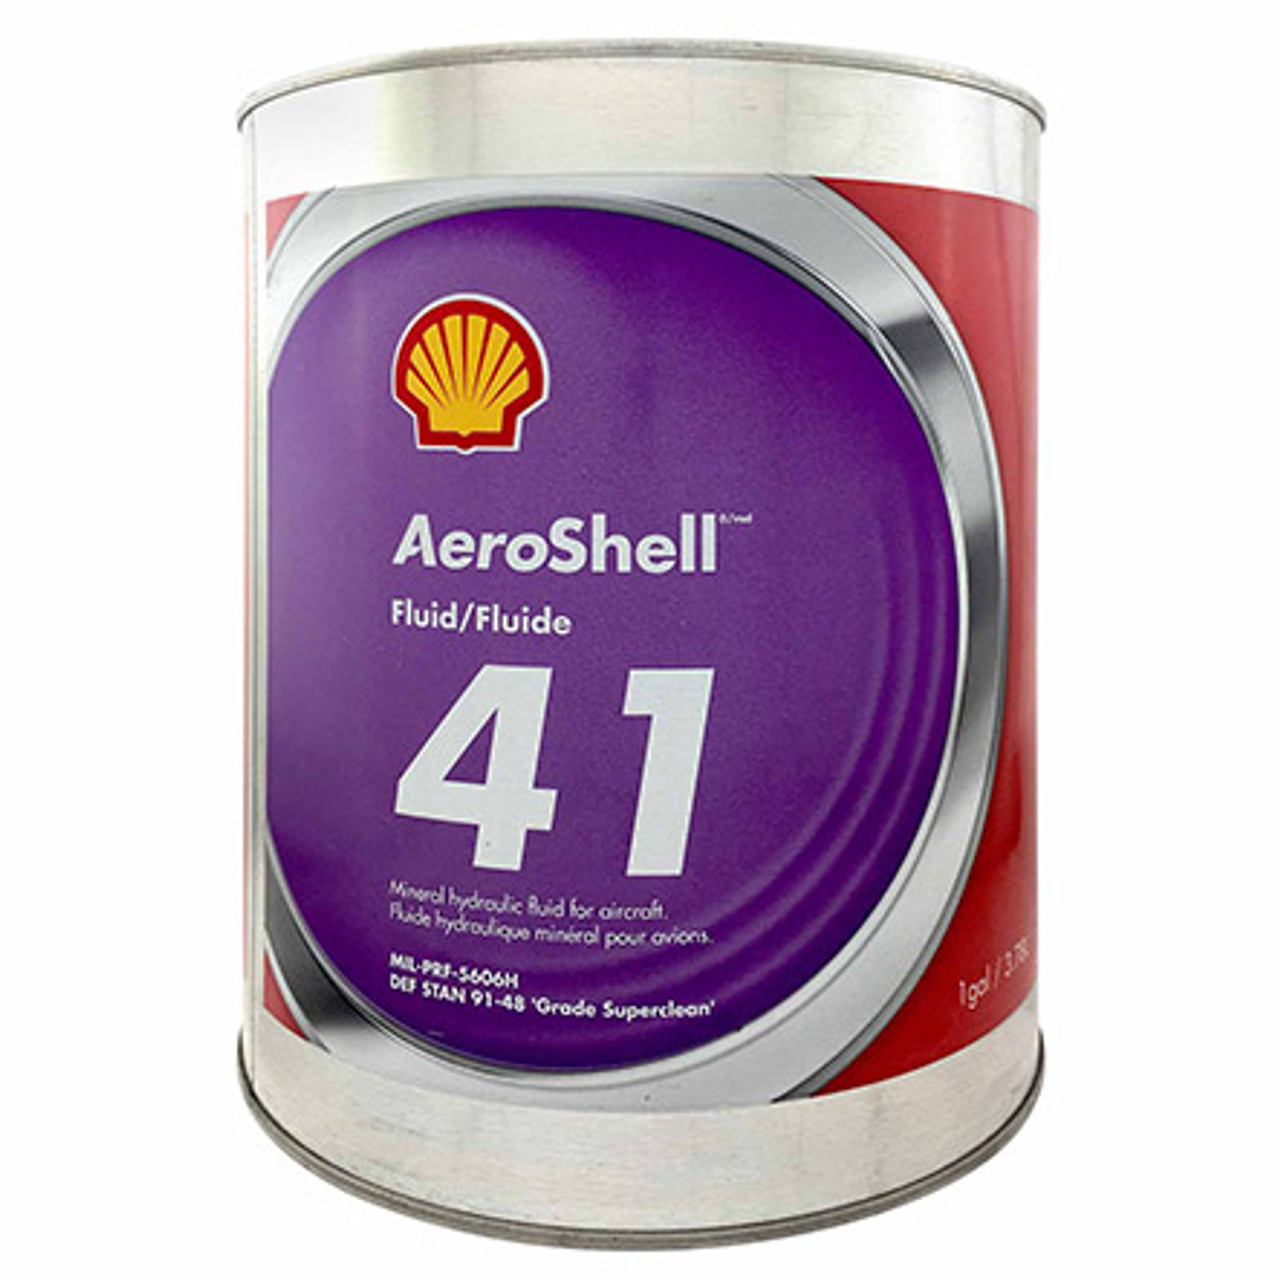 """AeroShell™ Fluid 41 Mineral Aircraft Hydraulic Fluid - Gallon Can - Part#: 550043667by AeroShell™ AeroShell Fluid 41 is a mineral hydraulic oil manufactured to a very high level of cleanliness, and possesses improved fluid properties. AeroShell Fluid 41 contains additives which provide excellent low temperature fluidity as well as exceptional anti-wear, oxidation - corrosion inhibition and shear stability. In addition metal de-activators and foam inhibitors are included in this high viscosity index fluid to enhance performance in hydraulic applications. AeroShell Fluid 41 is capable of wide temperature range operation. AeroShell Fluid 41 is dyed red.  AeroShell Fluid 41 is intended as a hydraulic fluid in all modern aircraft applications requiring a mineral hydraulic fluid. AeroShell Fluid 41 is particularly recommended where use of a """"superclean"""" fluid can contribute to improvements in component reliability, and can be used in aircraft systems operating unpressurised between –54°C to 90°C and pressurised between –54°C to 135°C.  AeroShell Fluid 41 should be used in systems with synthetic rubber components and must not be used in systems incorporating natural rubber. Refer to the General Notes at the front of this section for further information.  AeroShell Fluid 41 is compatible with AeroShell Fluids 4, 31, 51, 61 and 71 and SSF/LGF.  Chlorinated solvents should not be used for cleaning hydraulic components which use AeroShell Fluid 41. The residual solvent contaminates the hydraulic fluid and may lead to corrosion.  Approvals/References/Specification  British Specification: approved DEF STAN 91-48 Grade Superclean French Specification: approved DCSEA 415/A Joint Service Designation Specification: OM-15 (equivalent OM-18) NATO Specification: H-515 (equivalent H-520) Russian Specification: analogue to AMG-10 US Military Specification: MIL-PRF-5606H DEF STAN - British Spec#: DEF STAN 91-48 Grade Superclean JSSG / JSD Spec#: OM-15 NATO Stock #: H-515"""